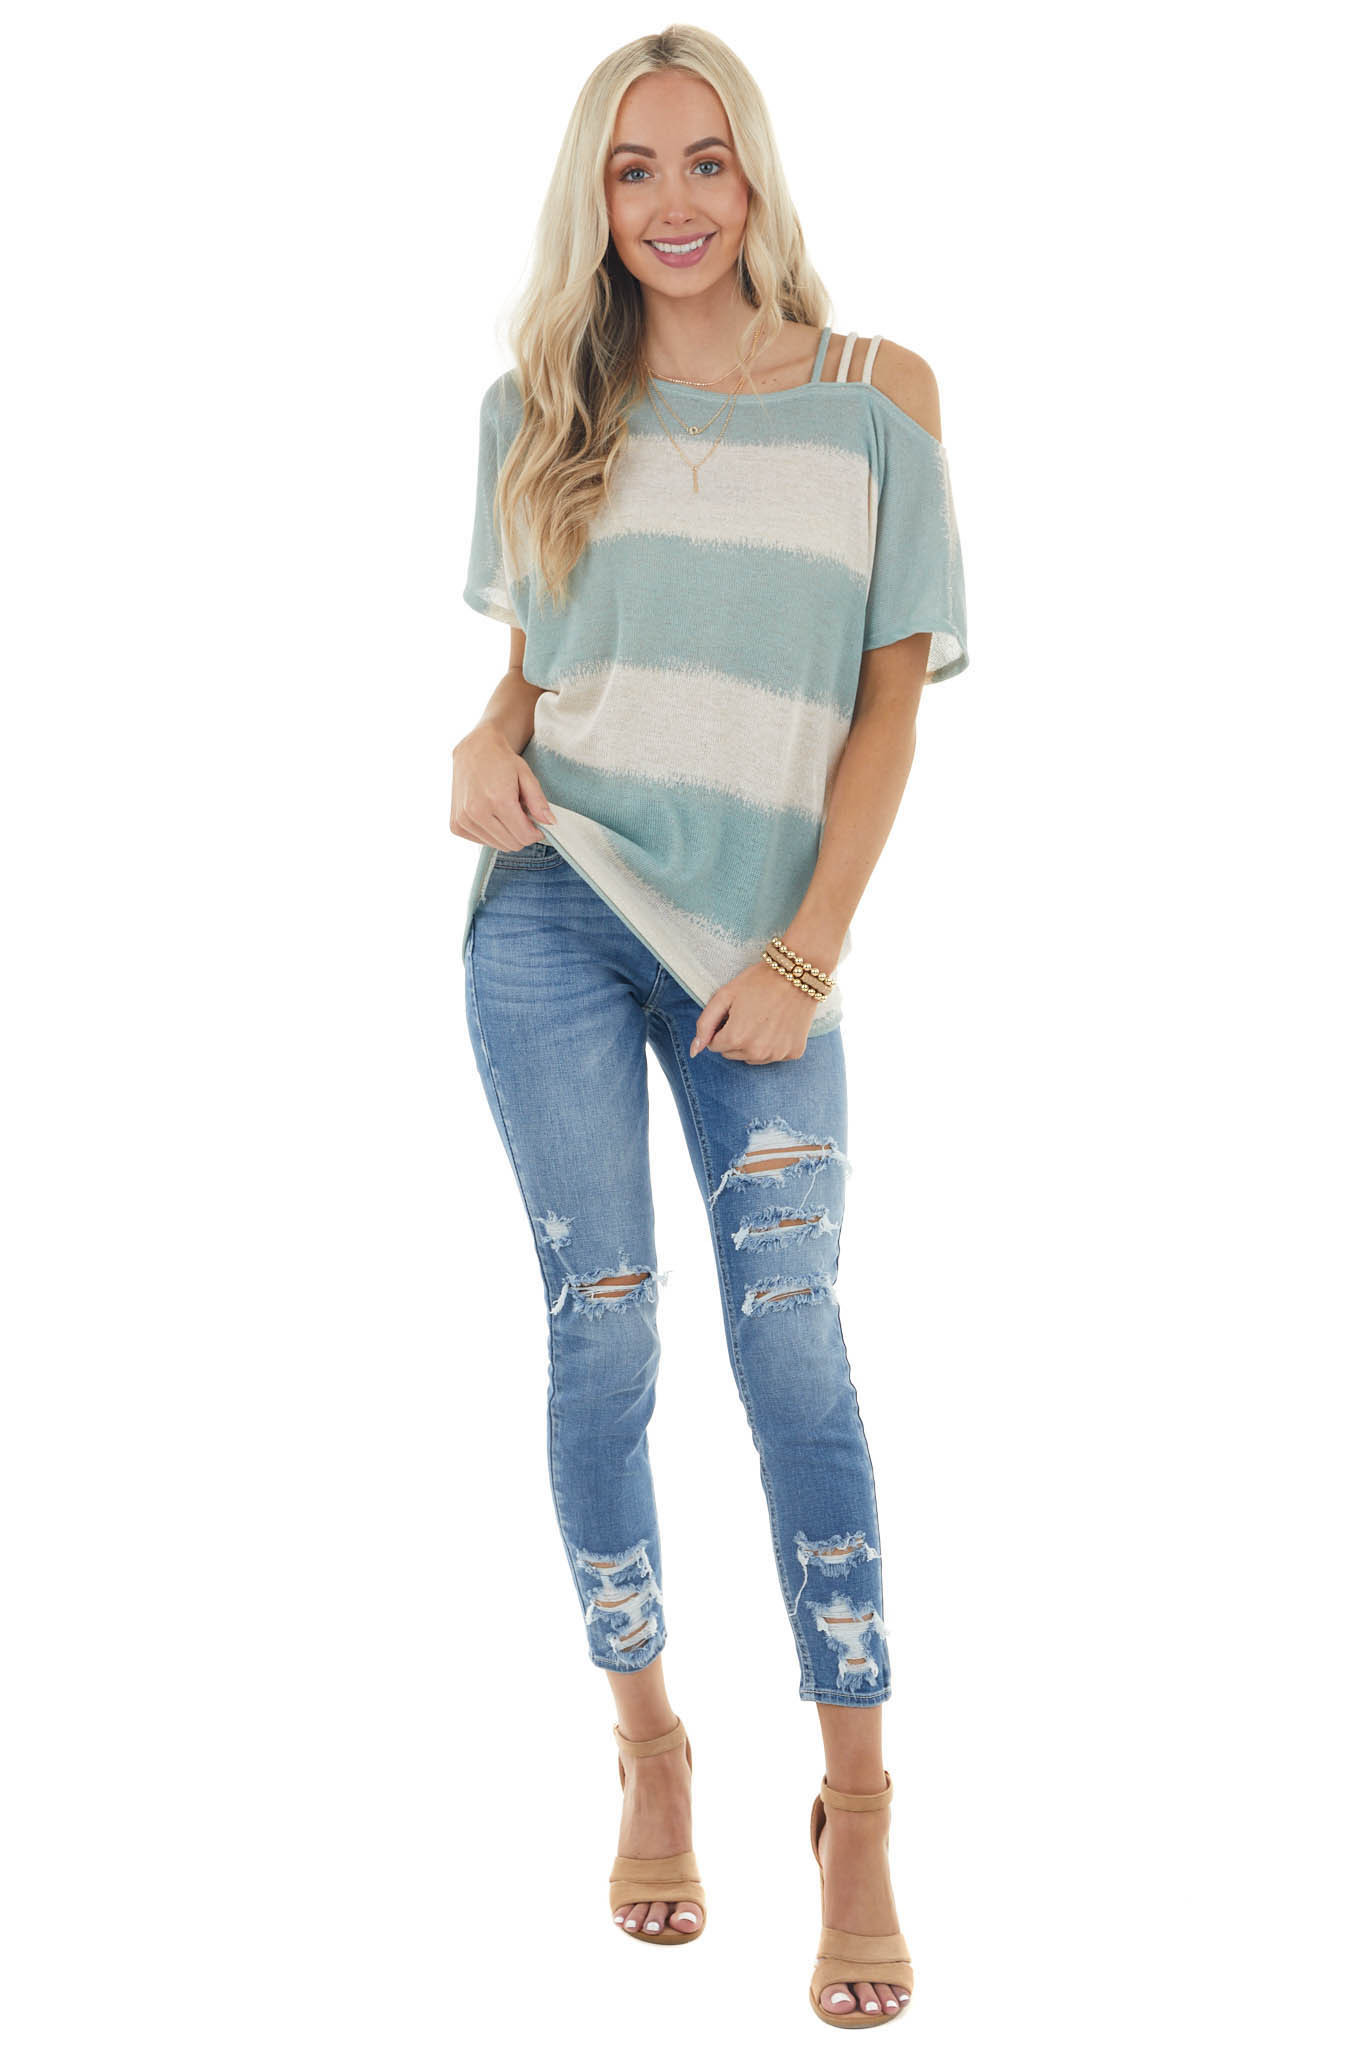 Teal and Cream Striped Strappy Cold Shoulder Knit Top